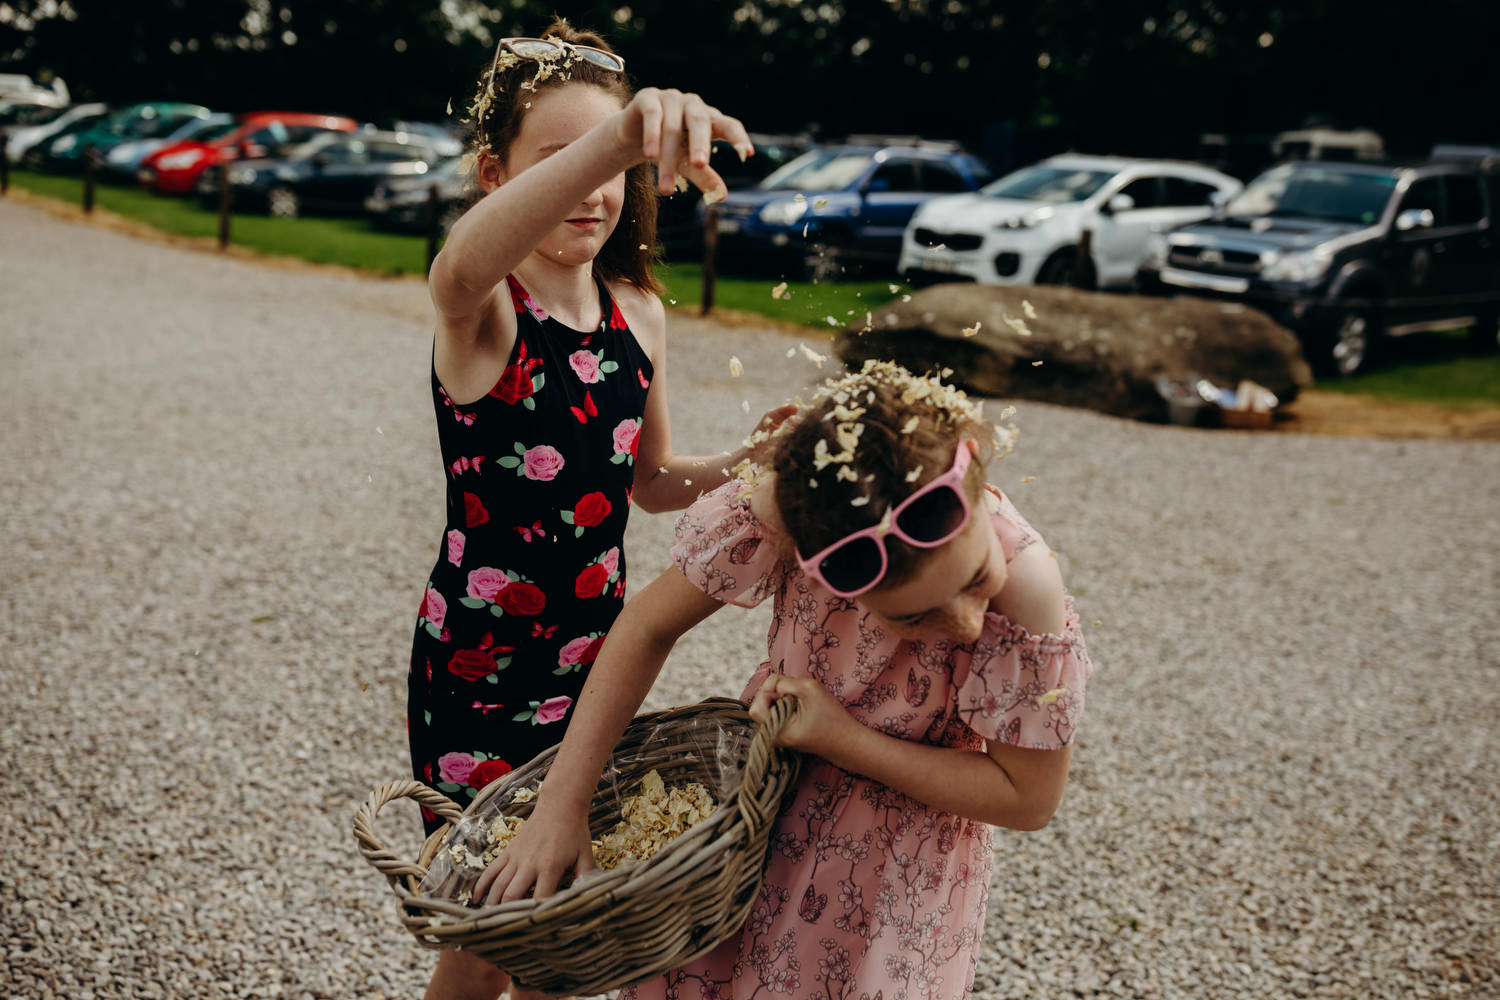 girls shower each other with confetti